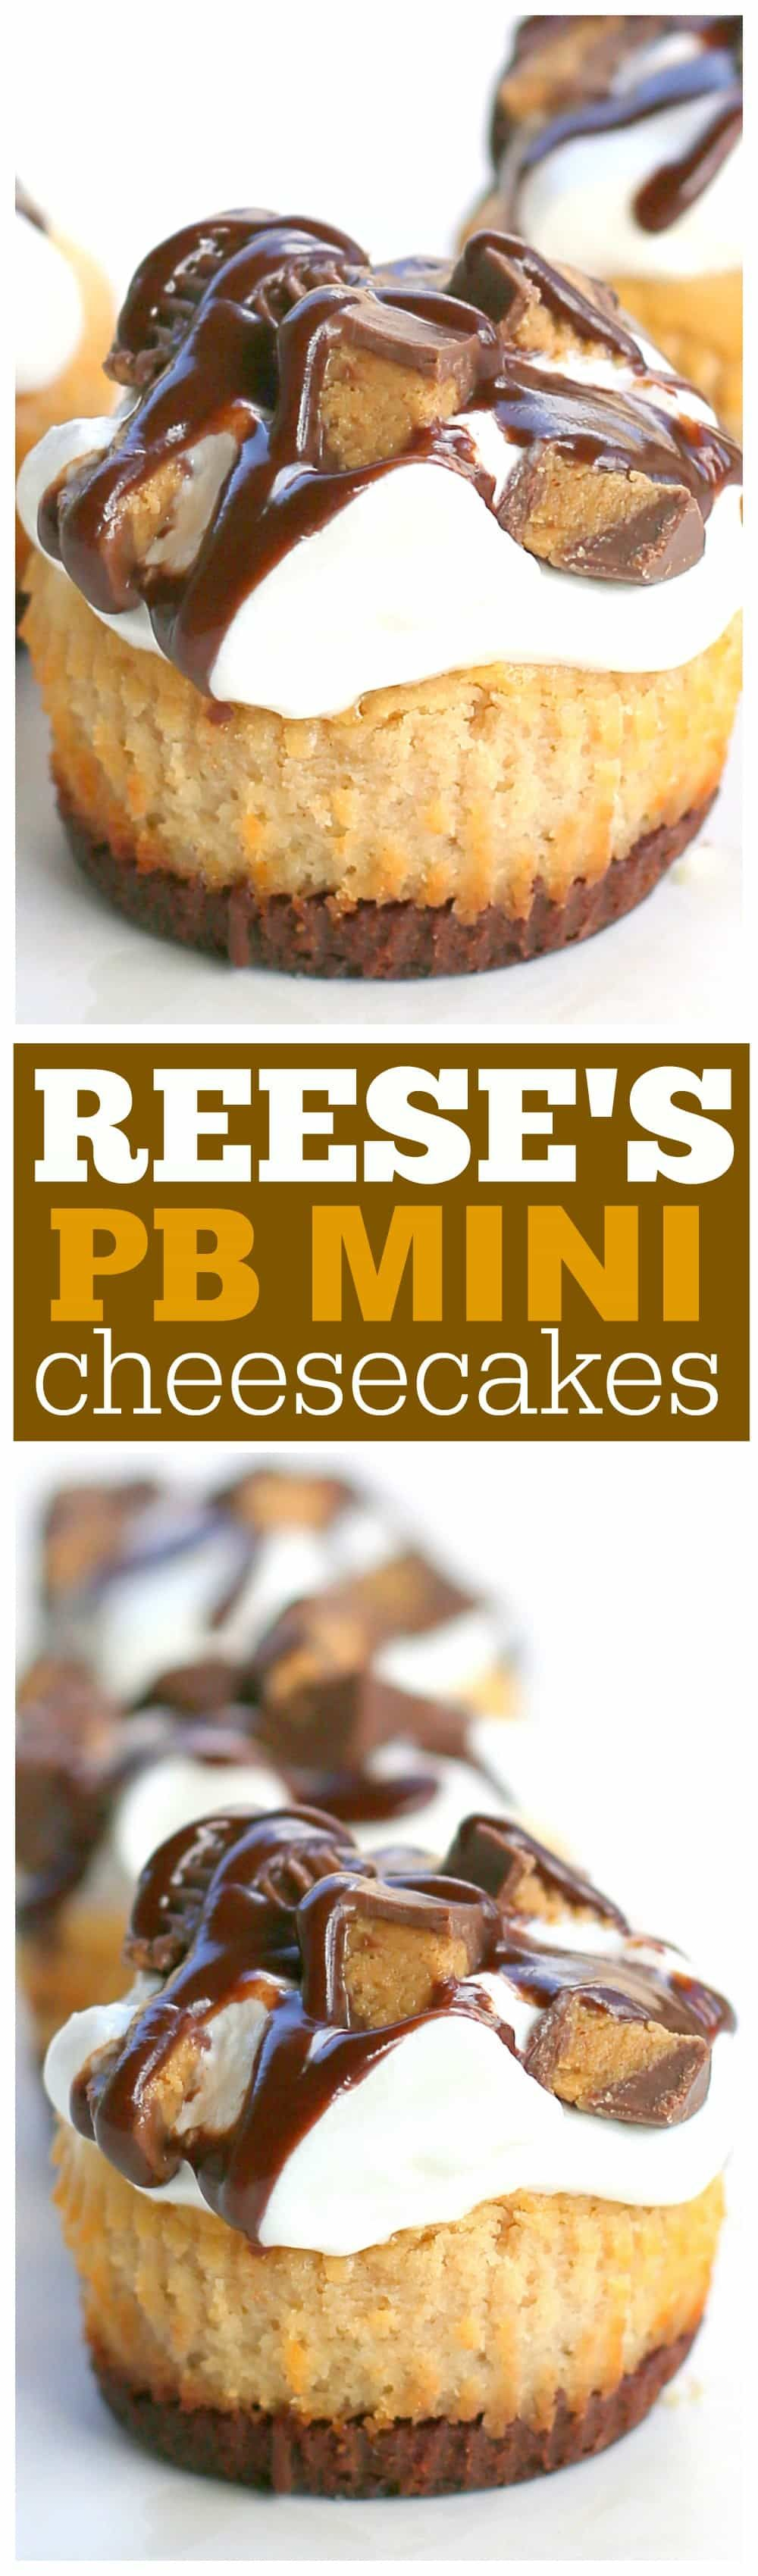 Reese's Peanut Butter Mini Cheesecakes   The Girl Who Ate Everything